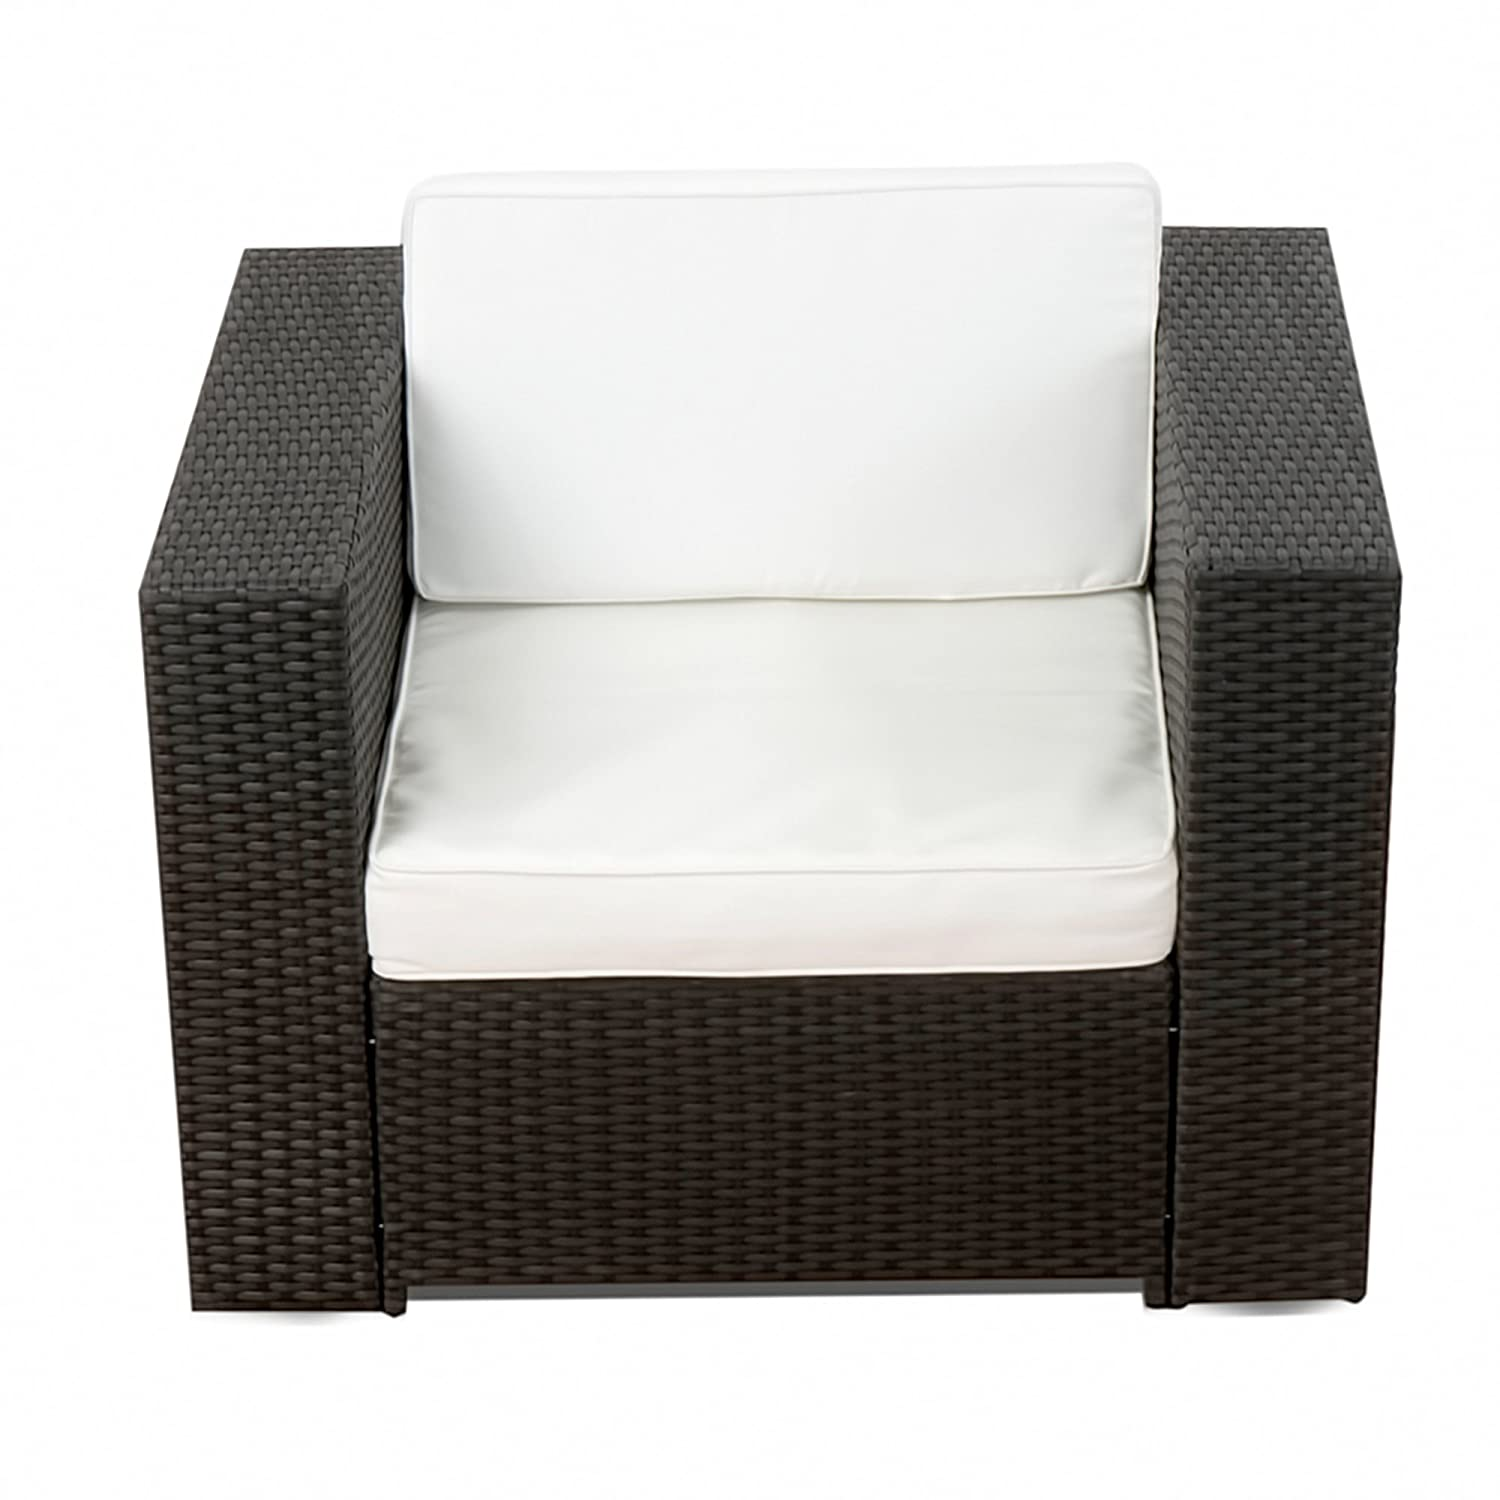 Lounge sofa outdoor günstig  Amazon.de: XINRO (1er) Premium Lounge Sessel - Lounge Sofa ...